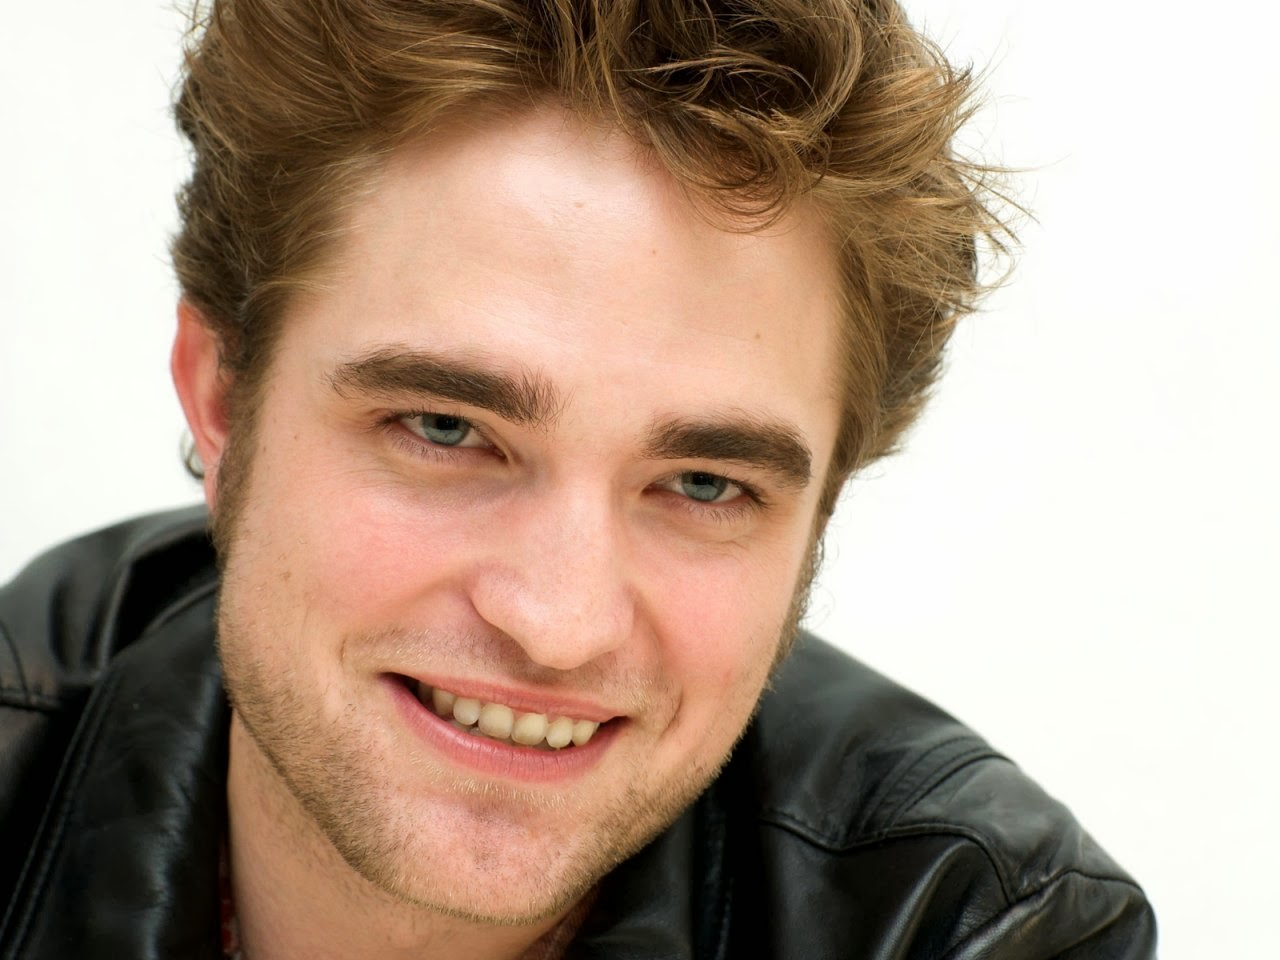 Celebrity Wallpapers: Horoscope says no girlfriend for ... Robert Pattinson